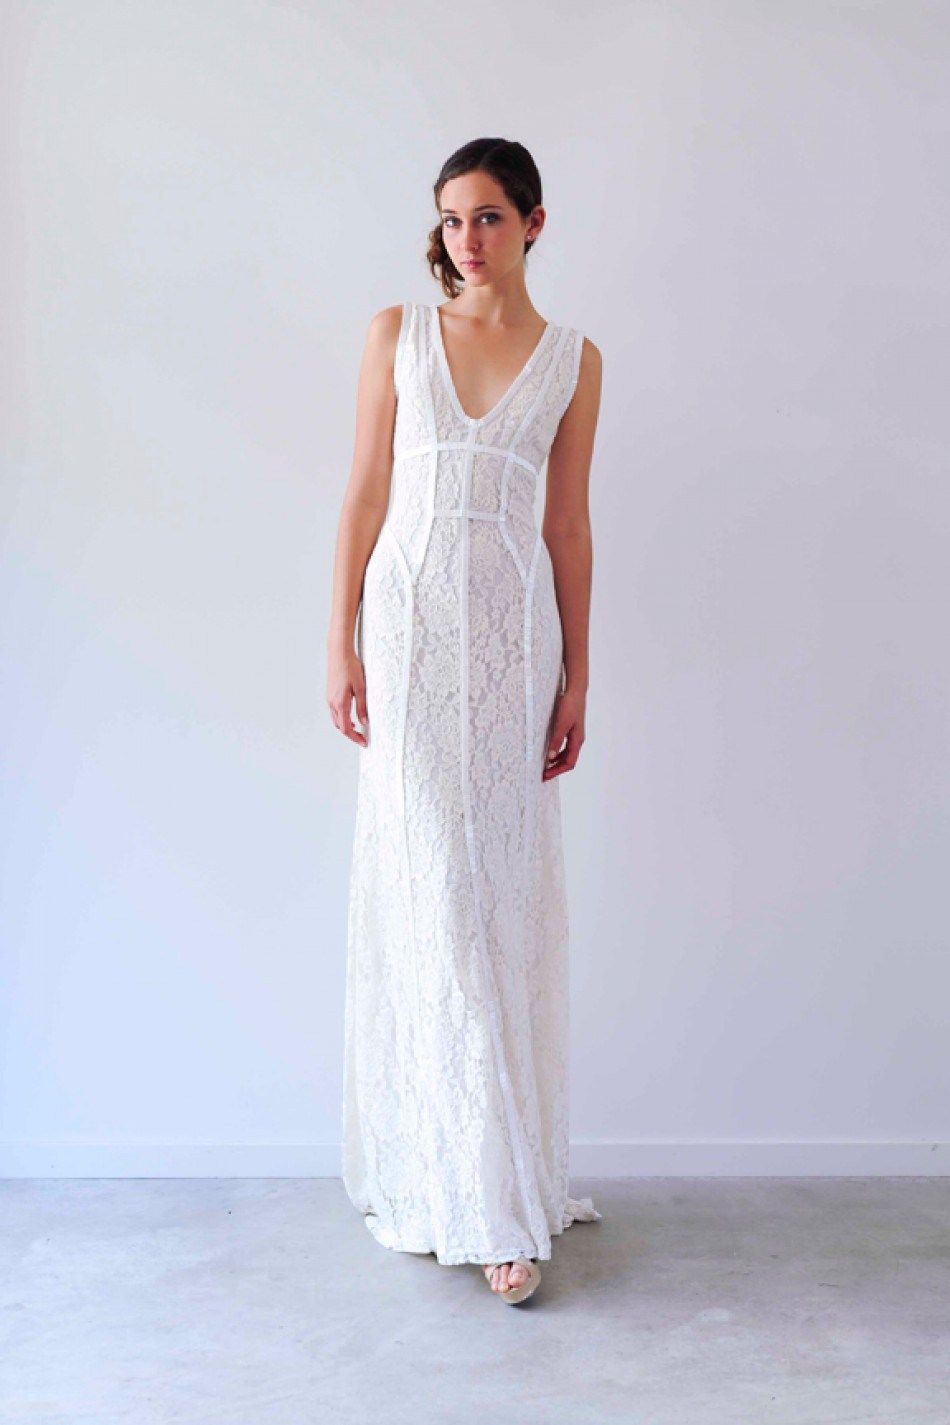 10 Wedding Dresses For Under $1000 - Brisbane Wedding Weekly ...